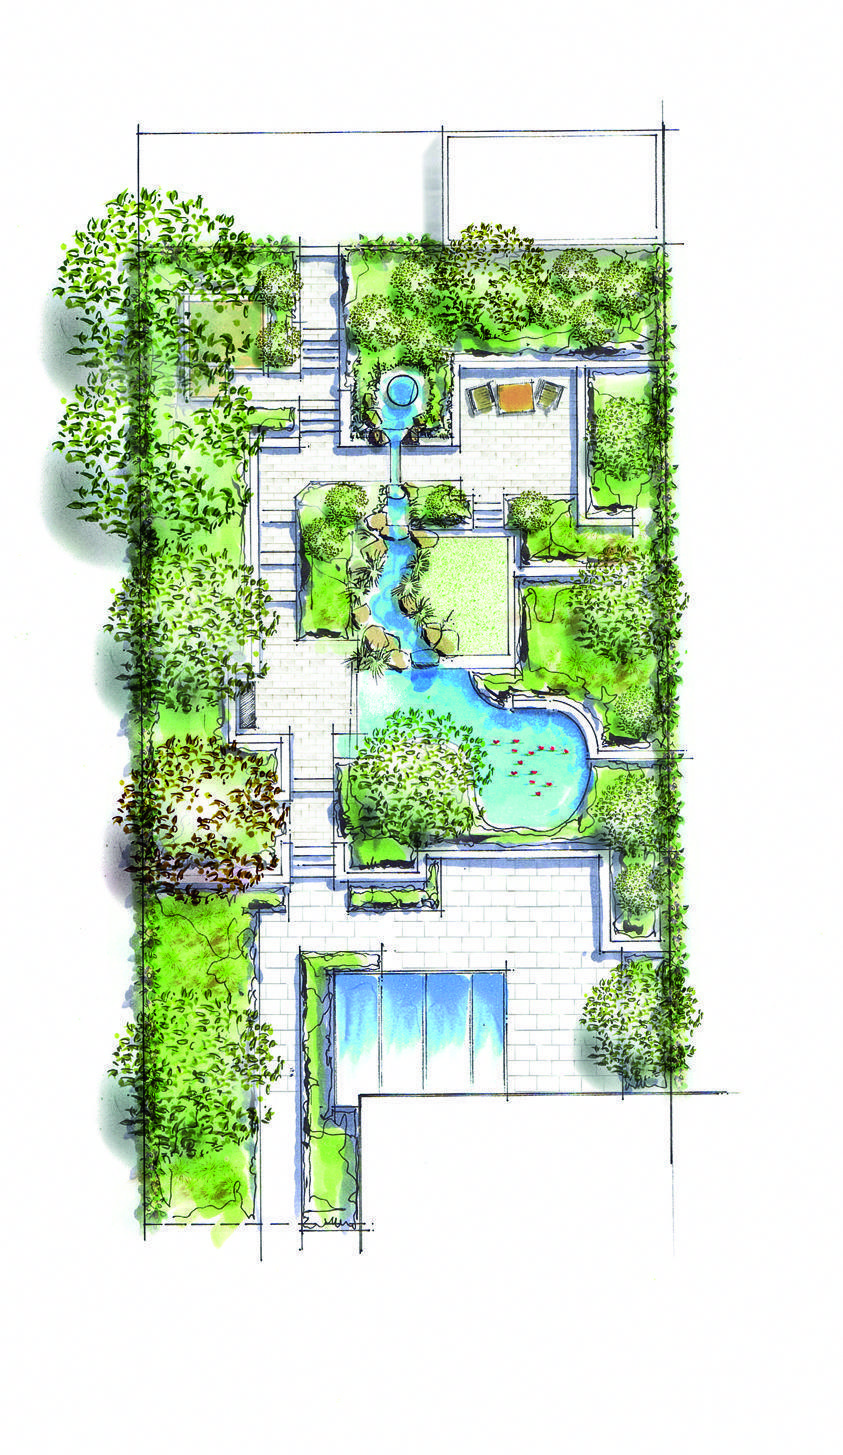 Green Roofs And Great Savings Landscape Design Drawings Roof Garden Design Garden Design Plans